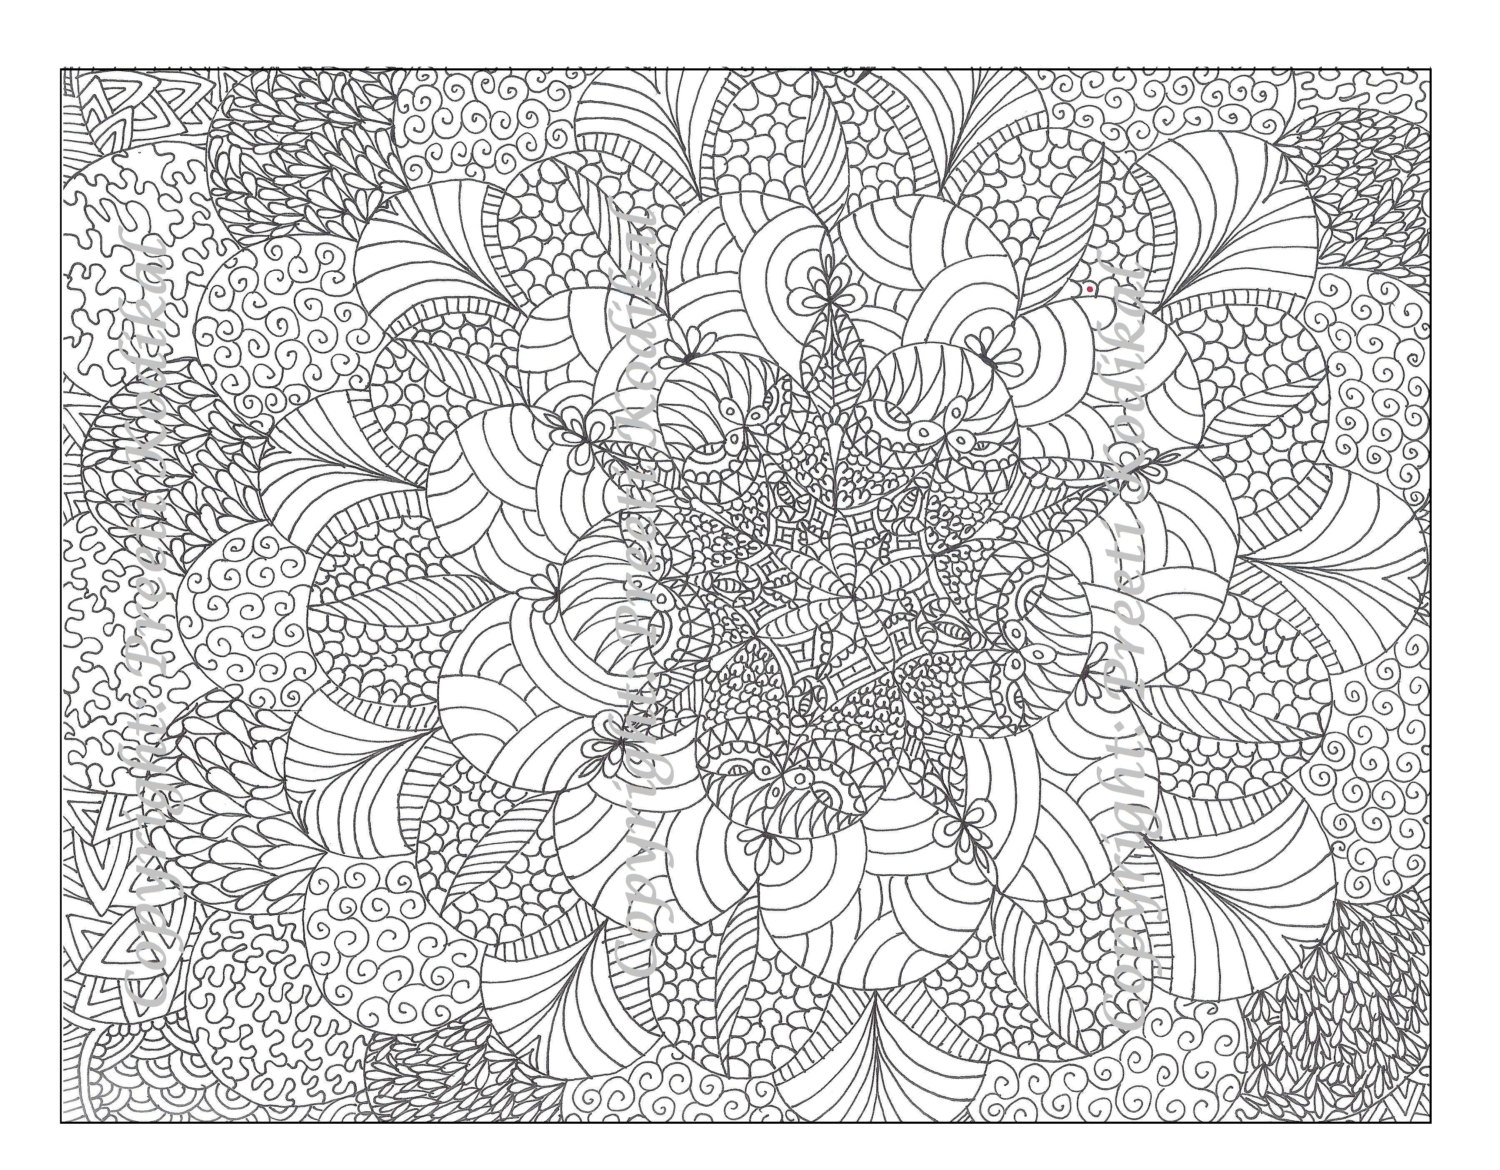 Printable coloring books adults - Detailed Coloring Pages Printable